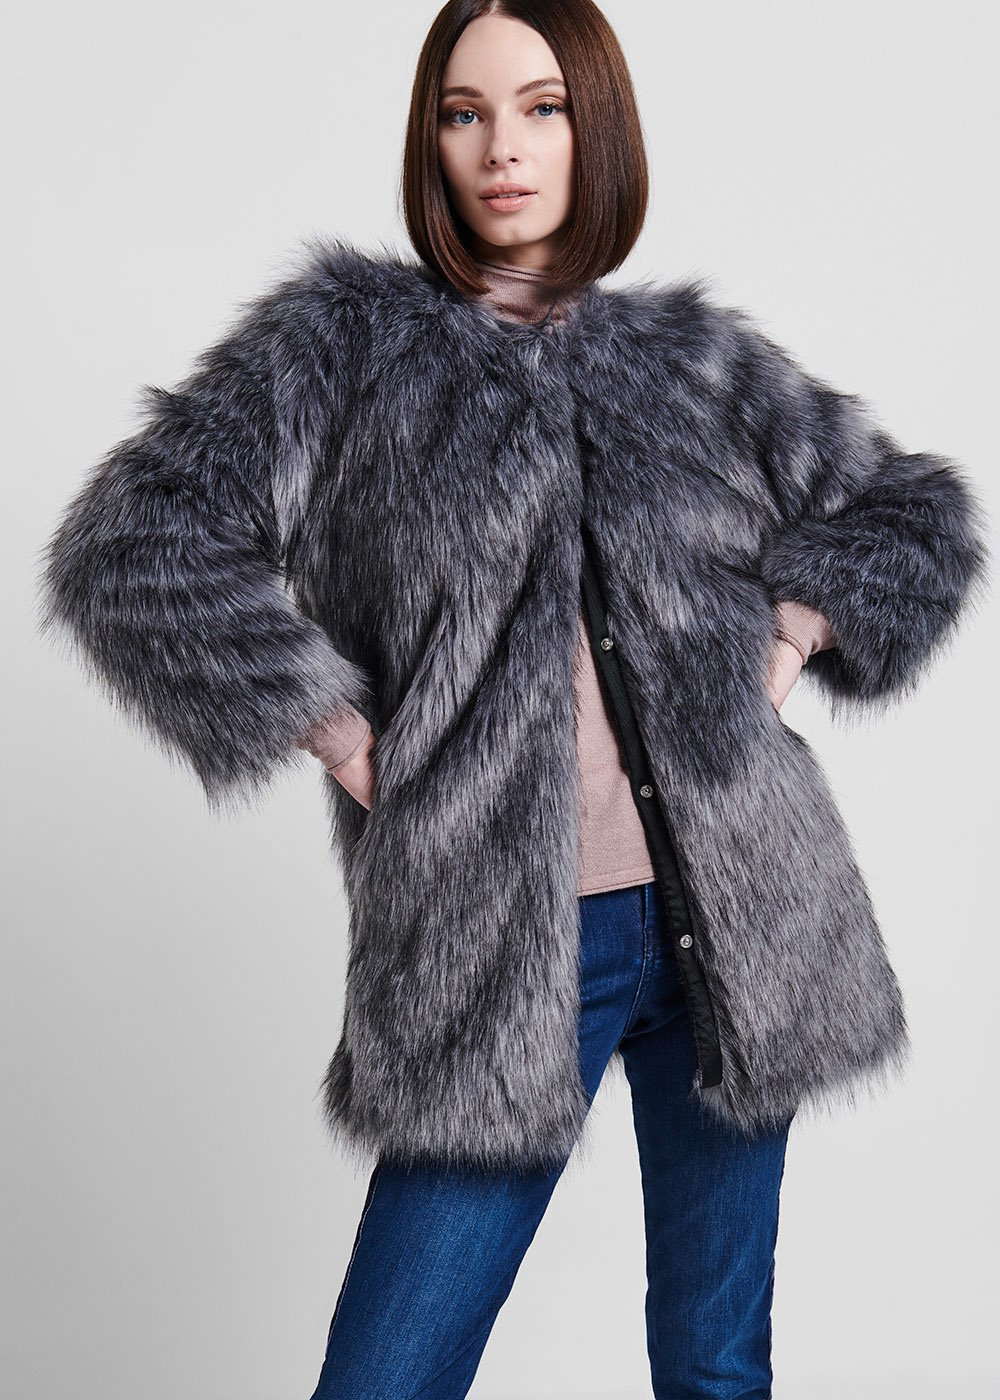 Faux - fur coat with long grey fur - Grey - Woman